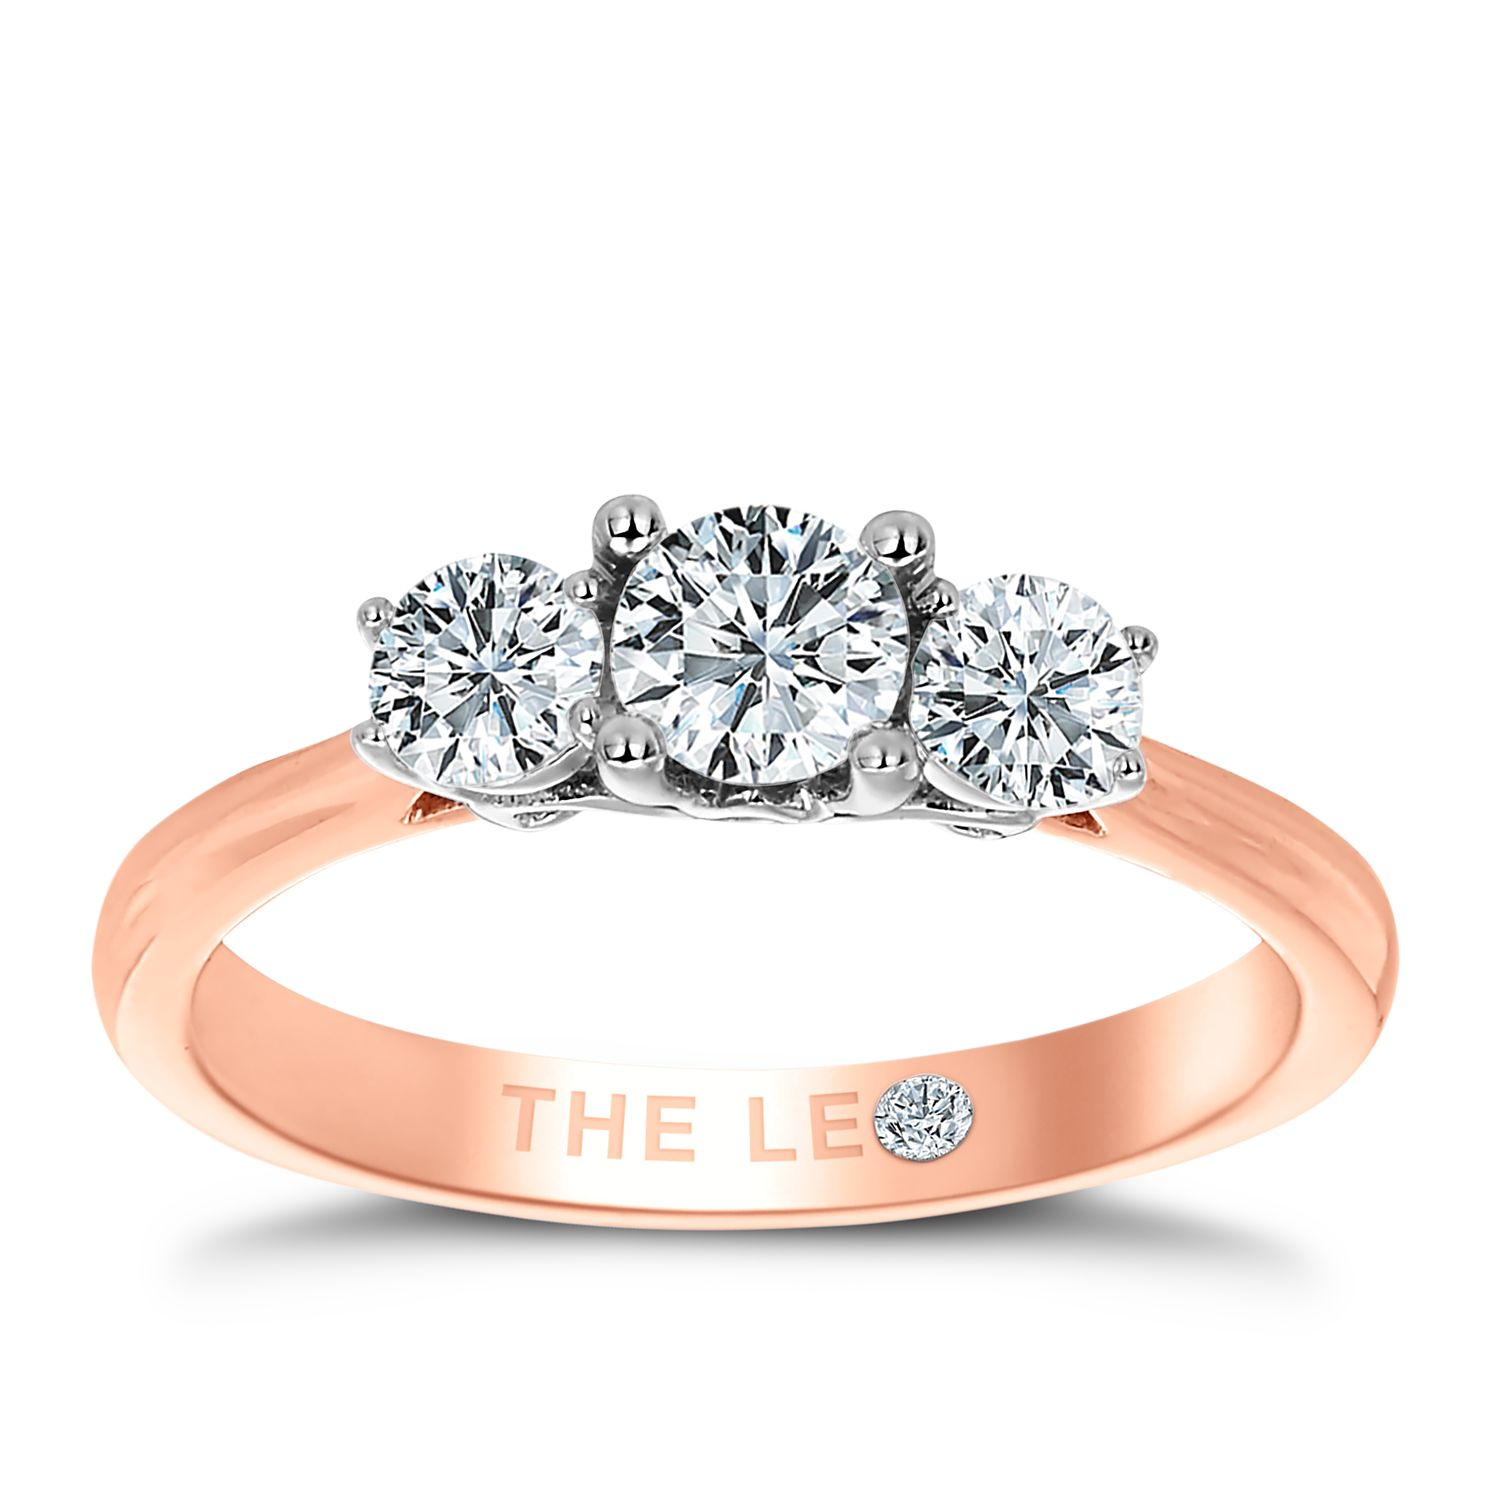 Leo Diamond 18ct Rose Gold 3 Stone 3/4ct Ii1 Diamond Ring - Product number 6899129